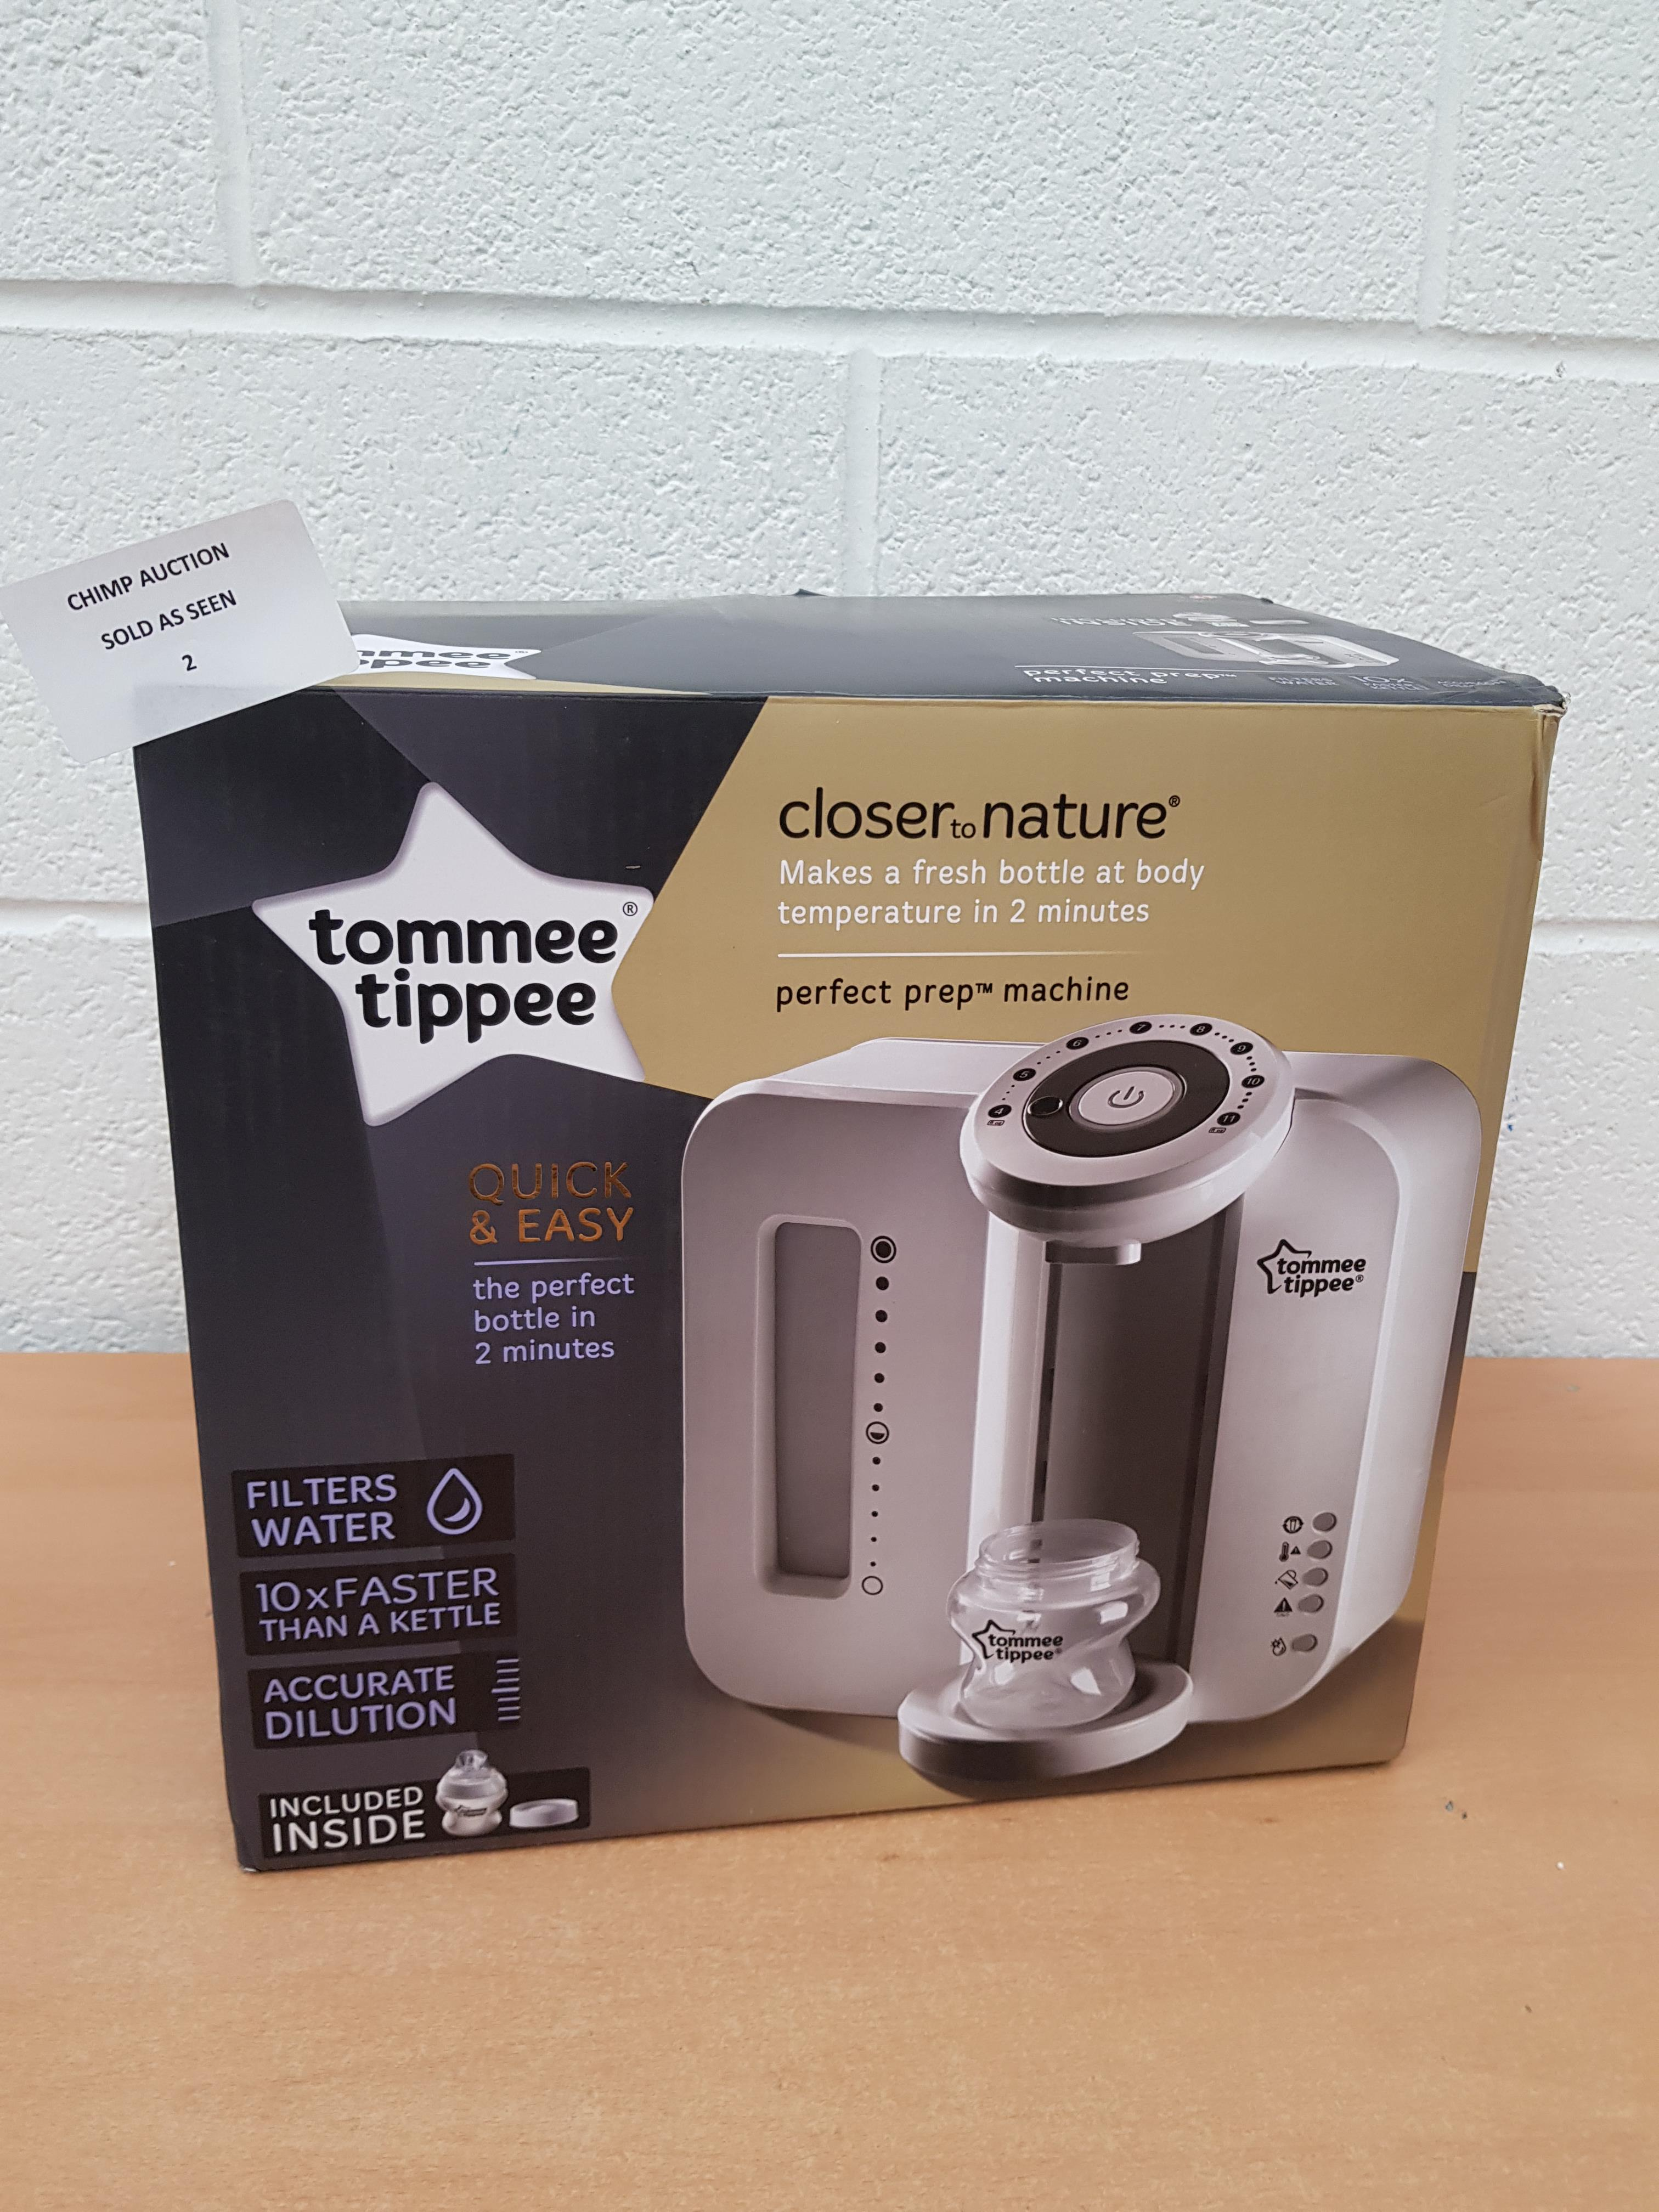 Lot 2 - Tommee Tippee Perfect Prep Machine RRP £129.99.